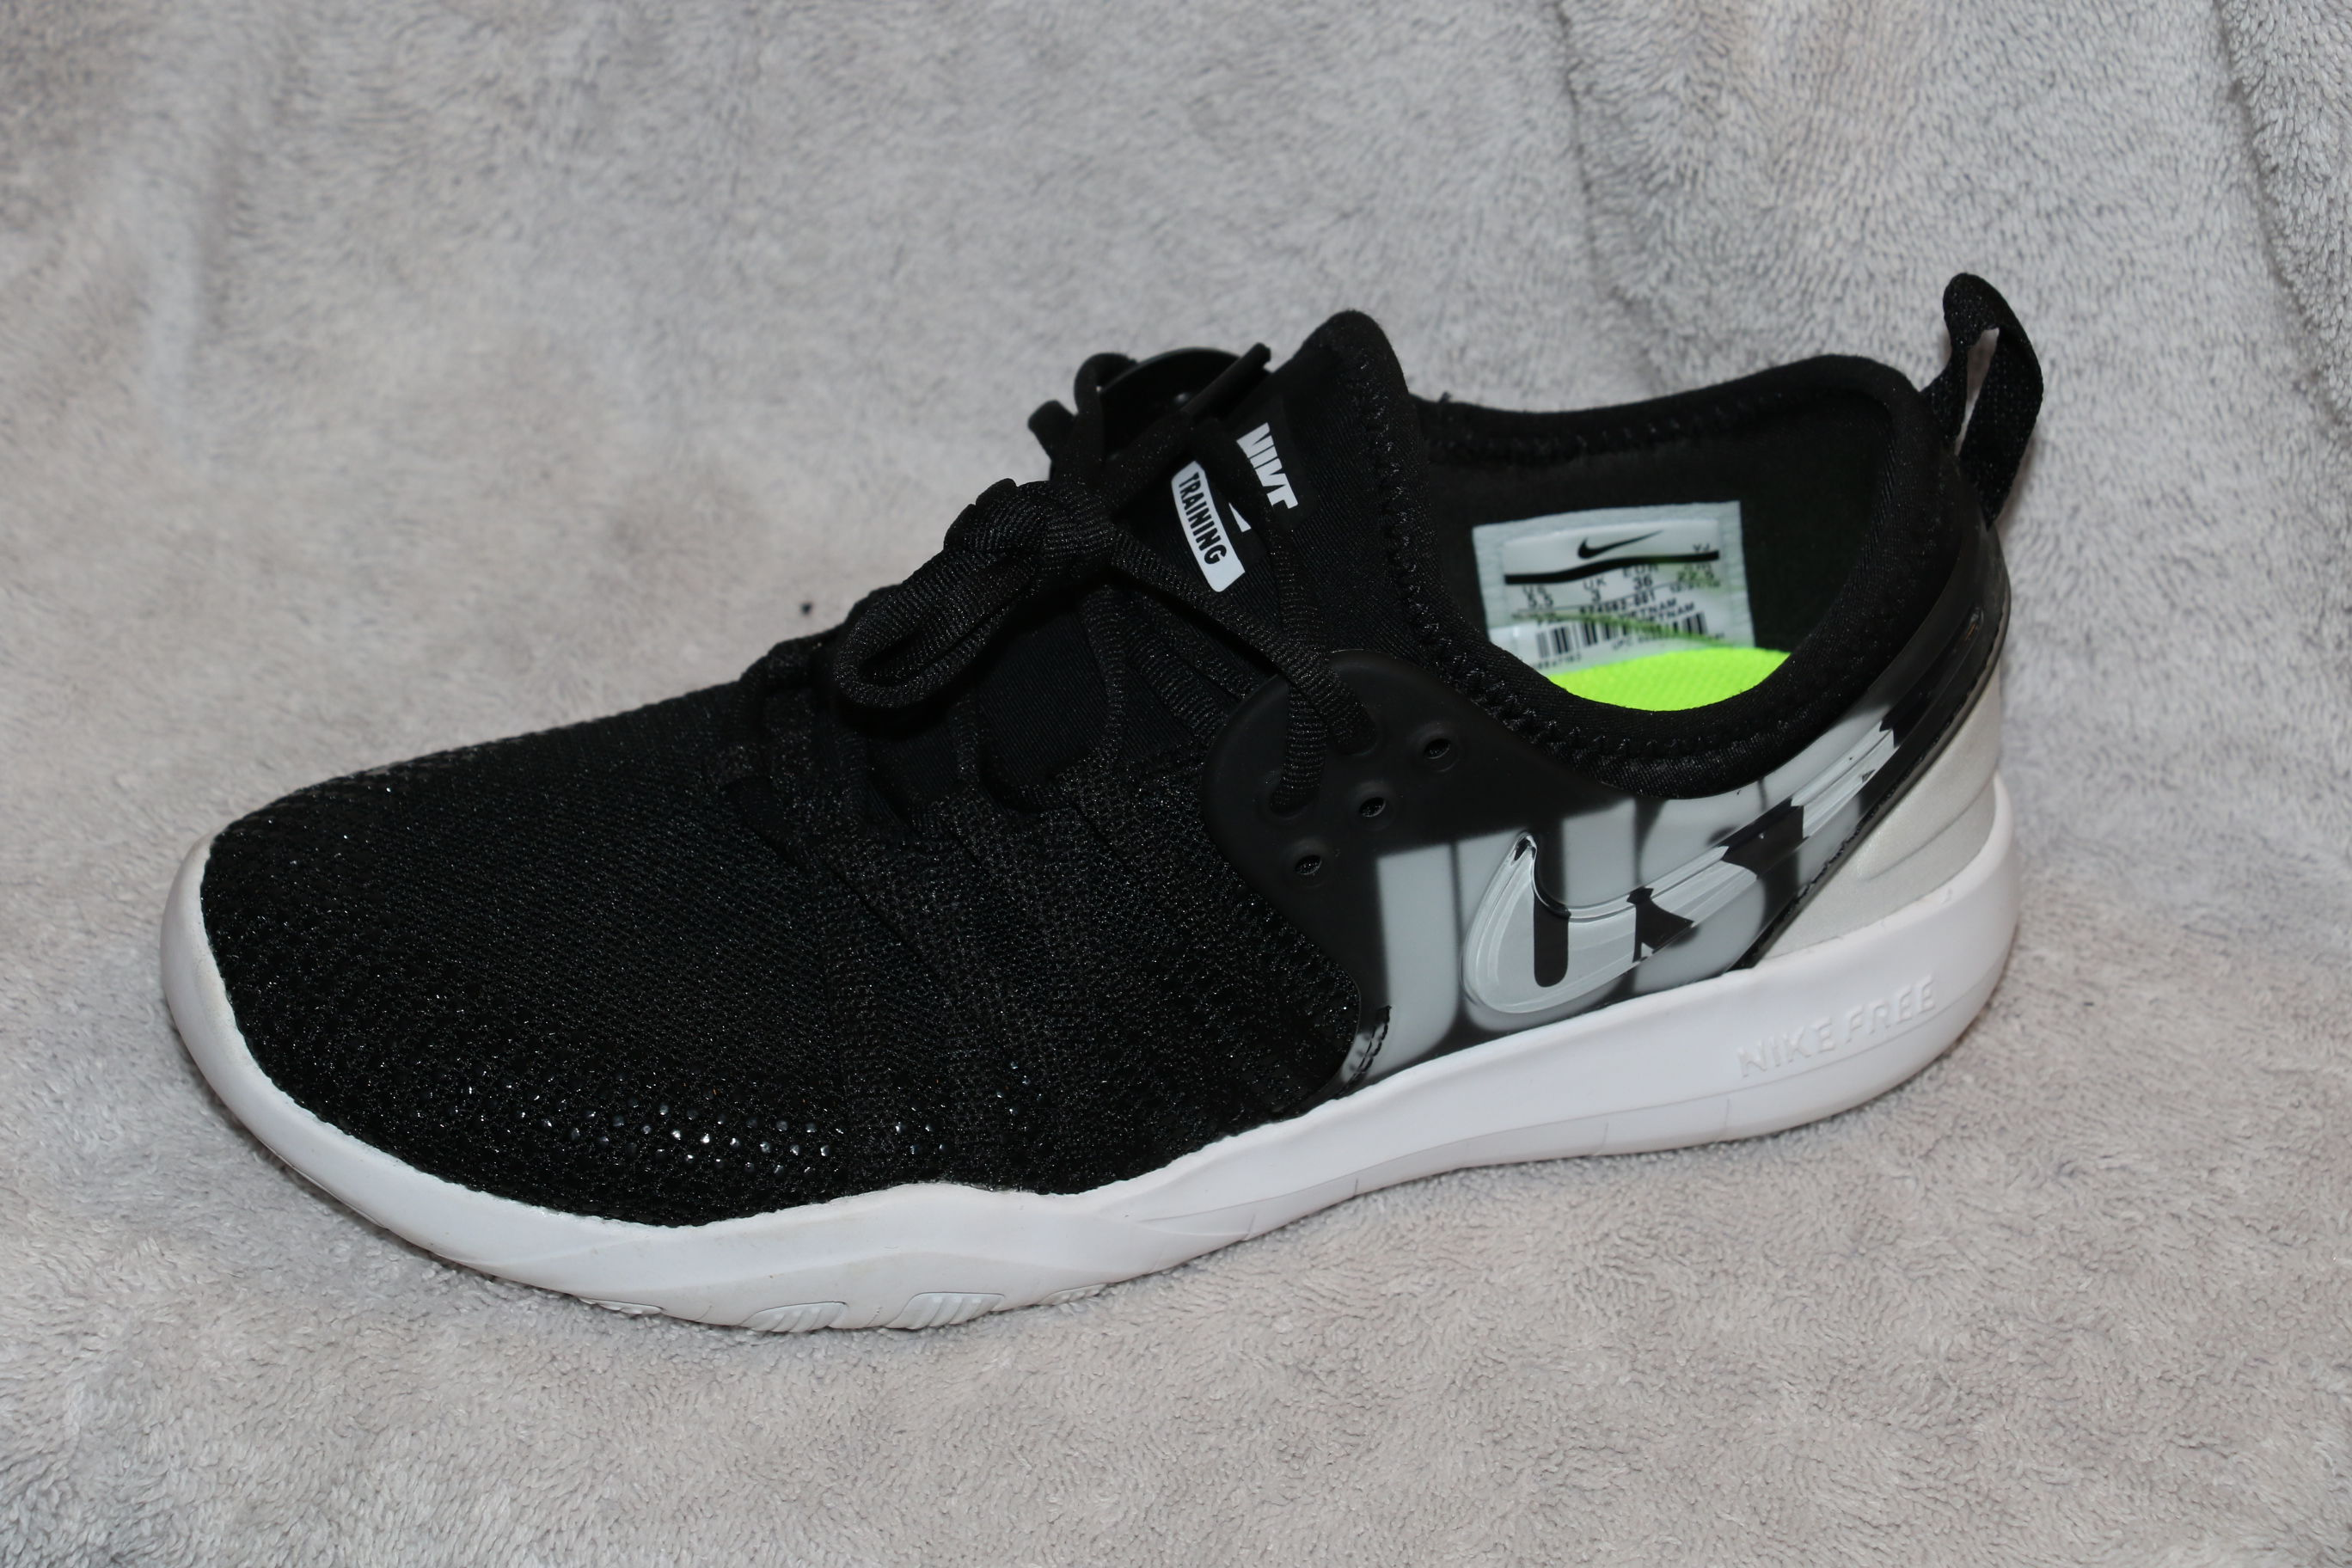 Found one black Nike training shoe, fairly new condition. image 1